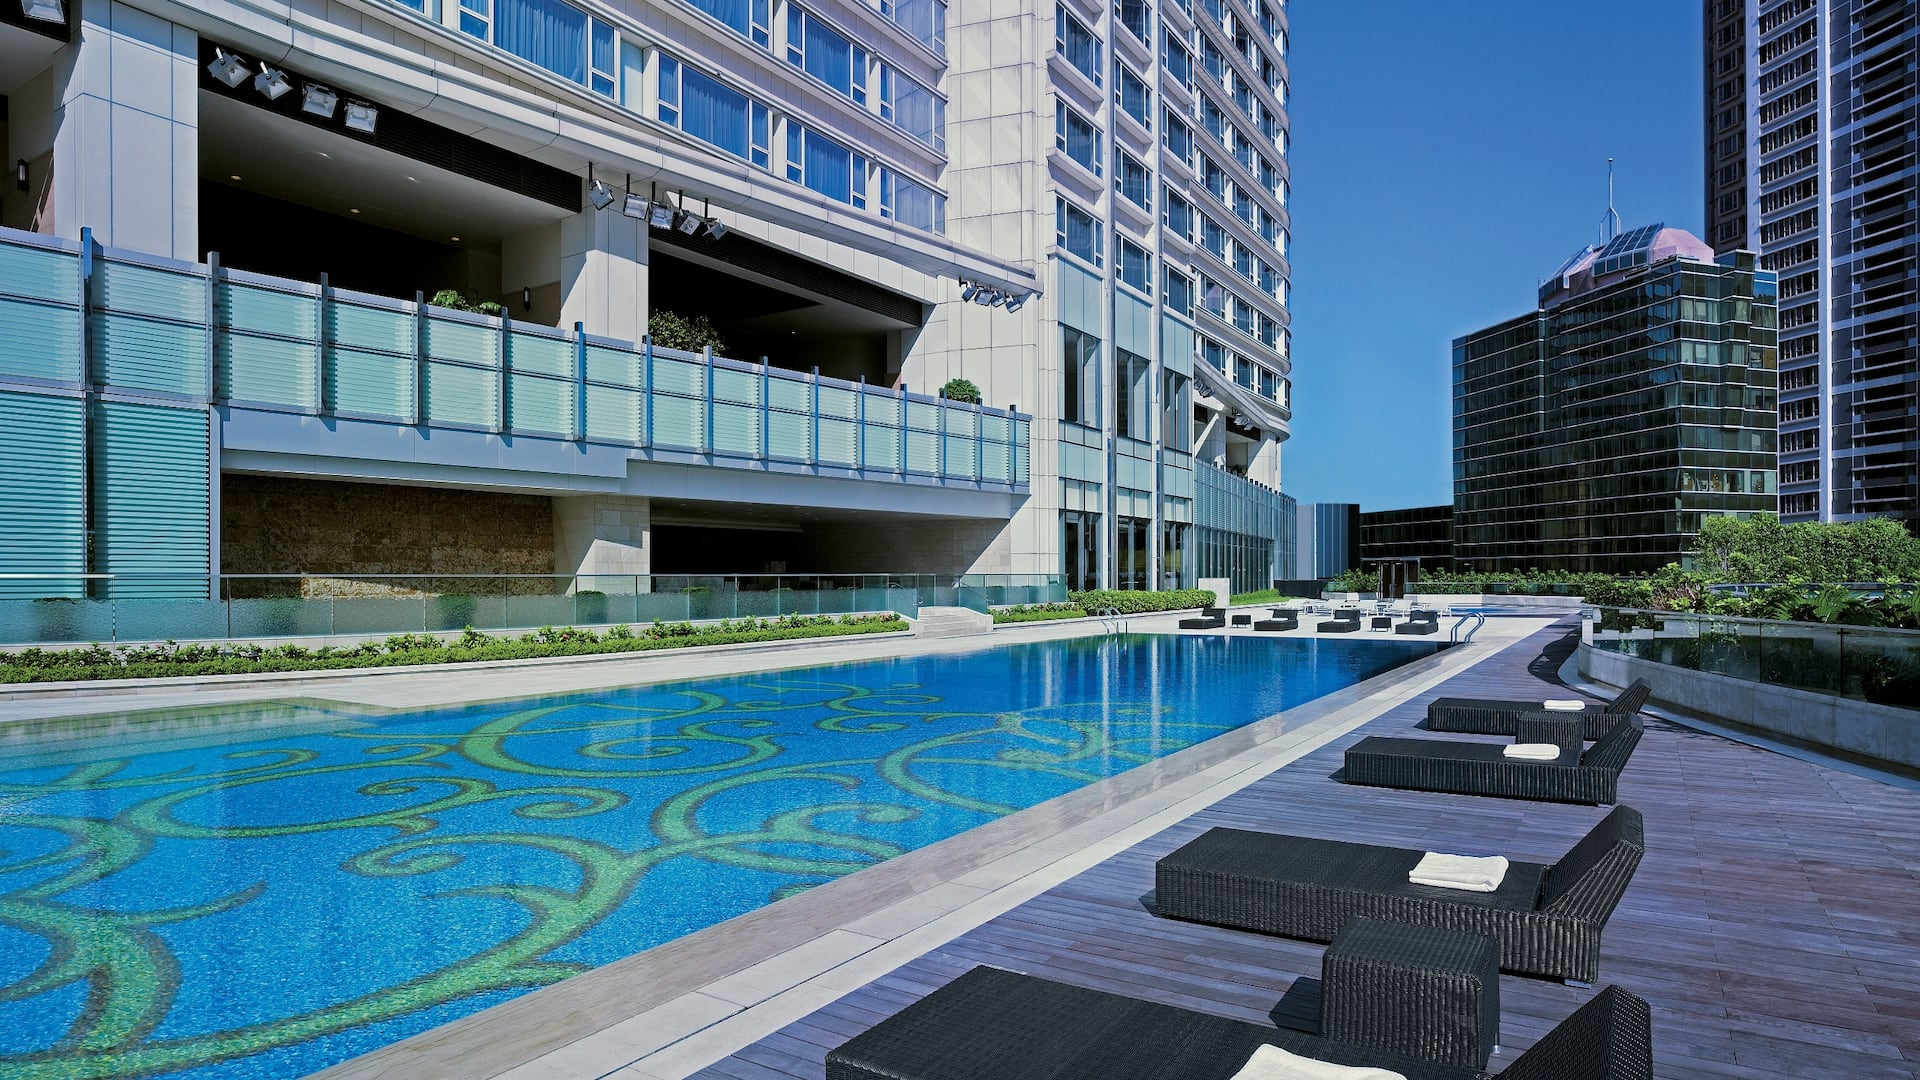 Hyatt Regency Tsim Sha Tsui Outdoor Heated Swimming Pool